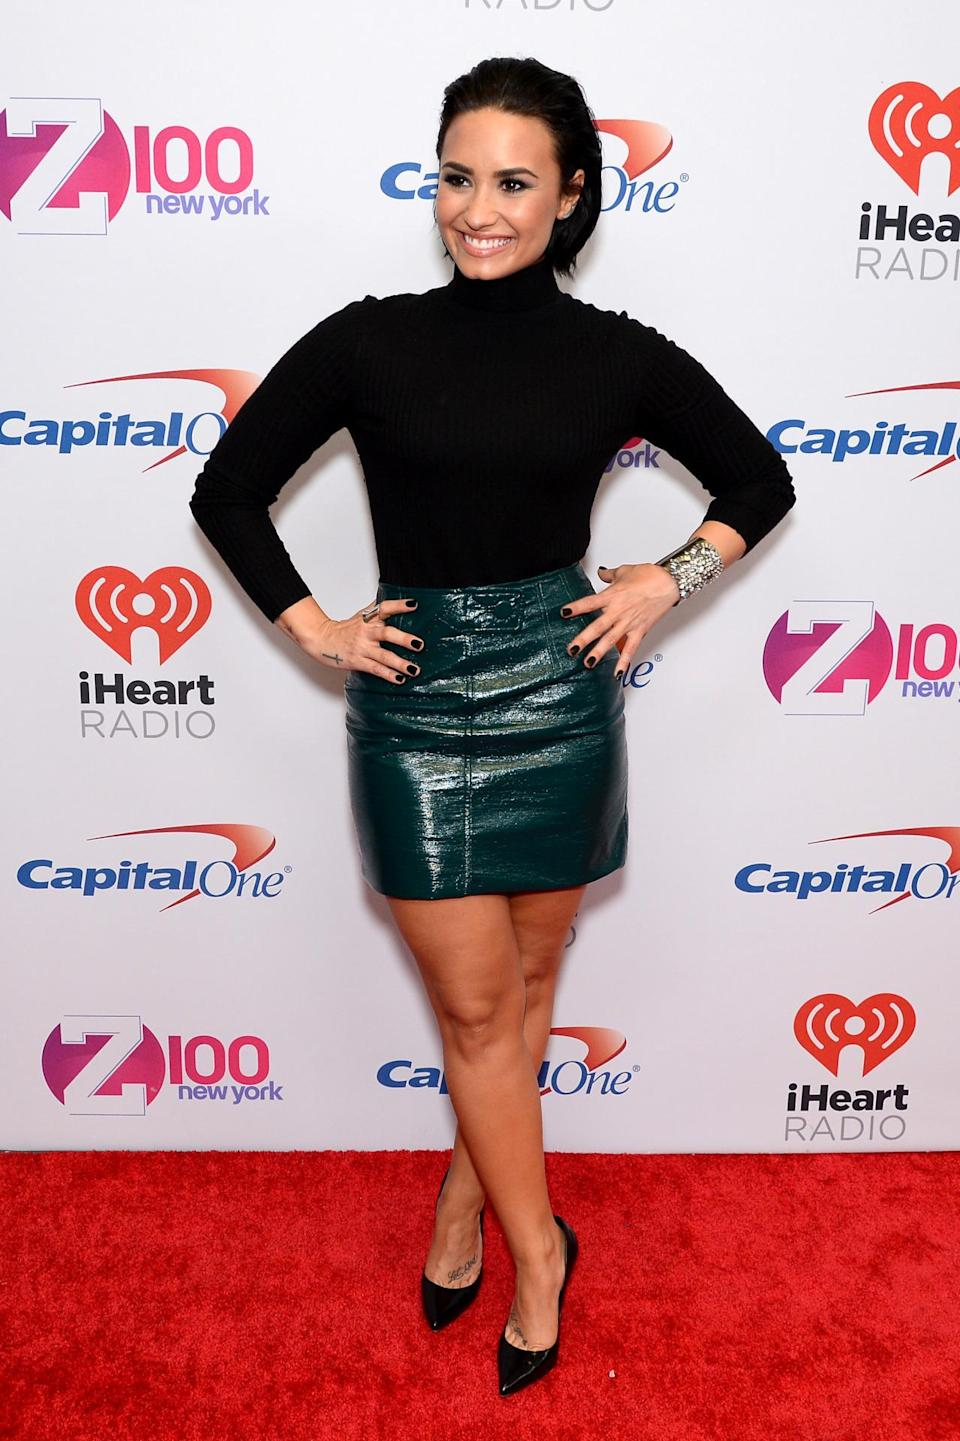 <p>The singer kept things pretty simple in a black turtleneck, pumps and a textured green skirt. She slicked back her bob to complete the look and also remind us just how darn good she looks with shorter hair.</p>